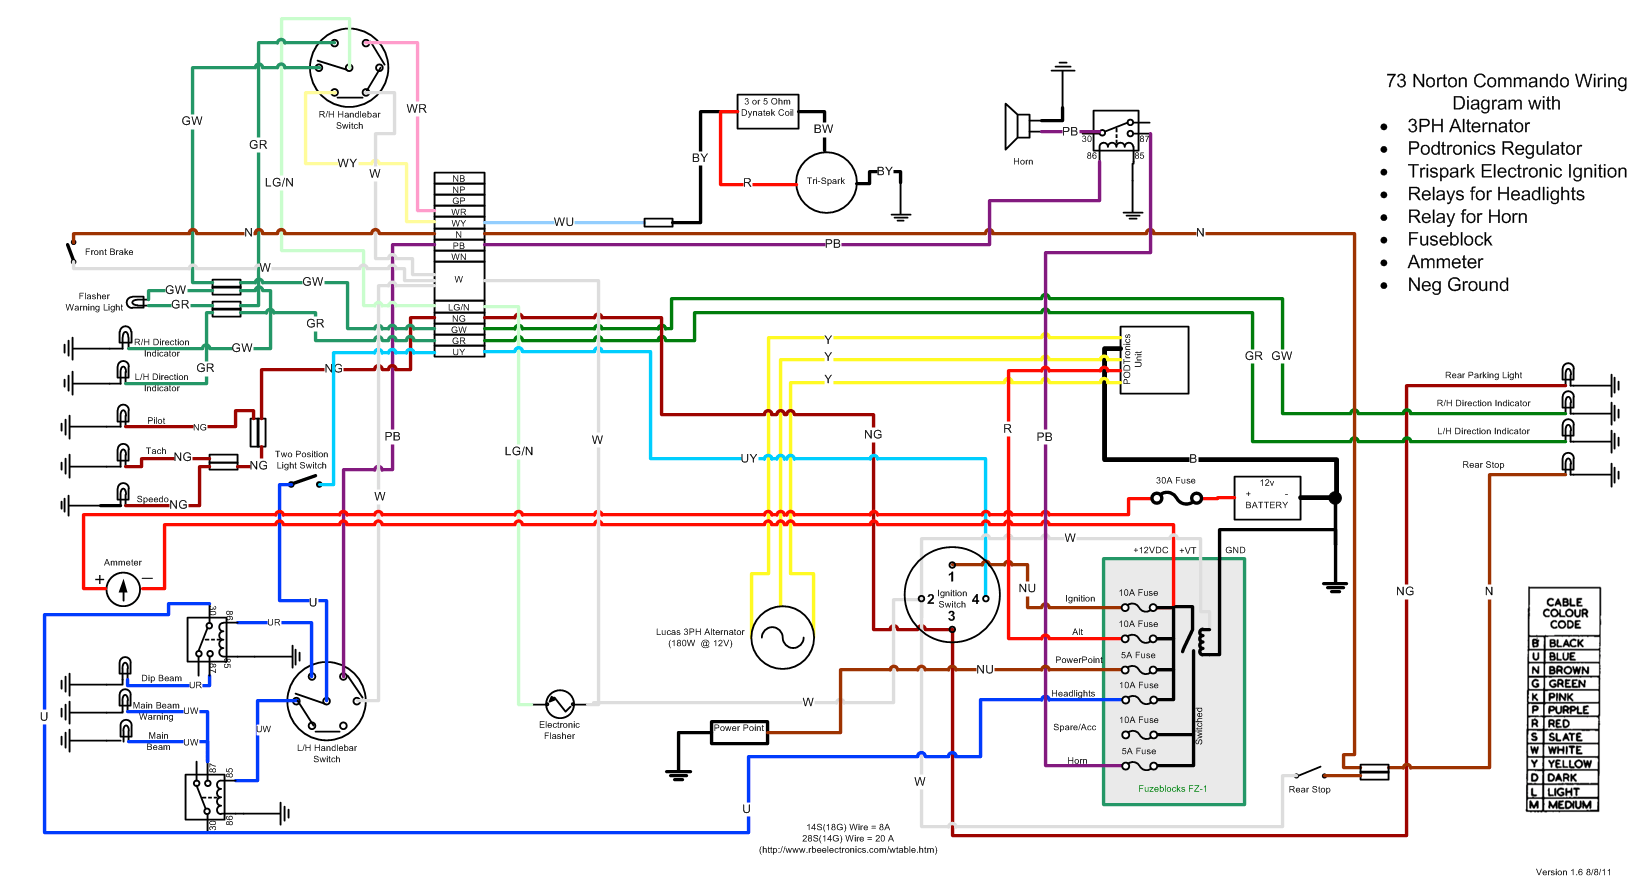 73wiringdiagram?resize\\\\=665%2C359 honda cn250 cdi wiring diagram 6 wire cdi box diagram, honda 90 6 wire cdi wiring diagram at bayanpartner.co